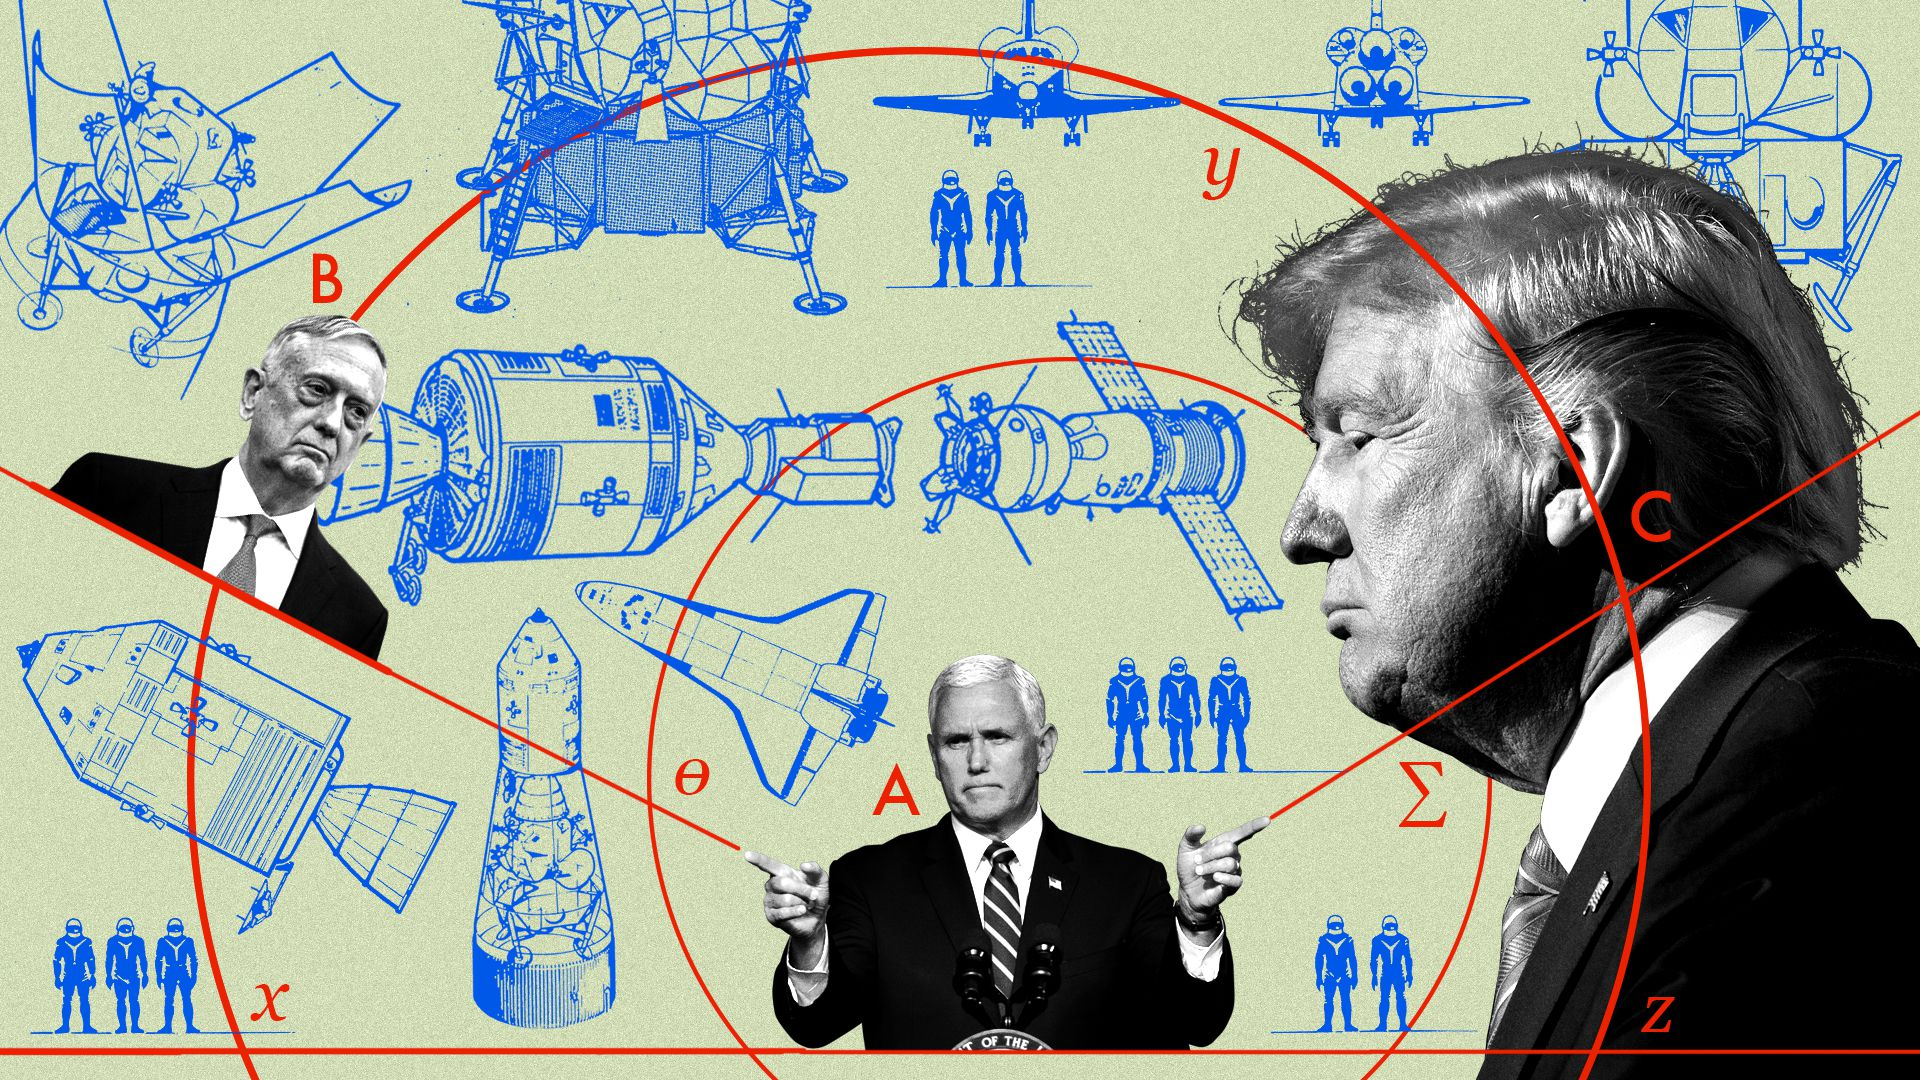 This diagram shows Mike Pence, John Kelly and Donald Trump with space stuff